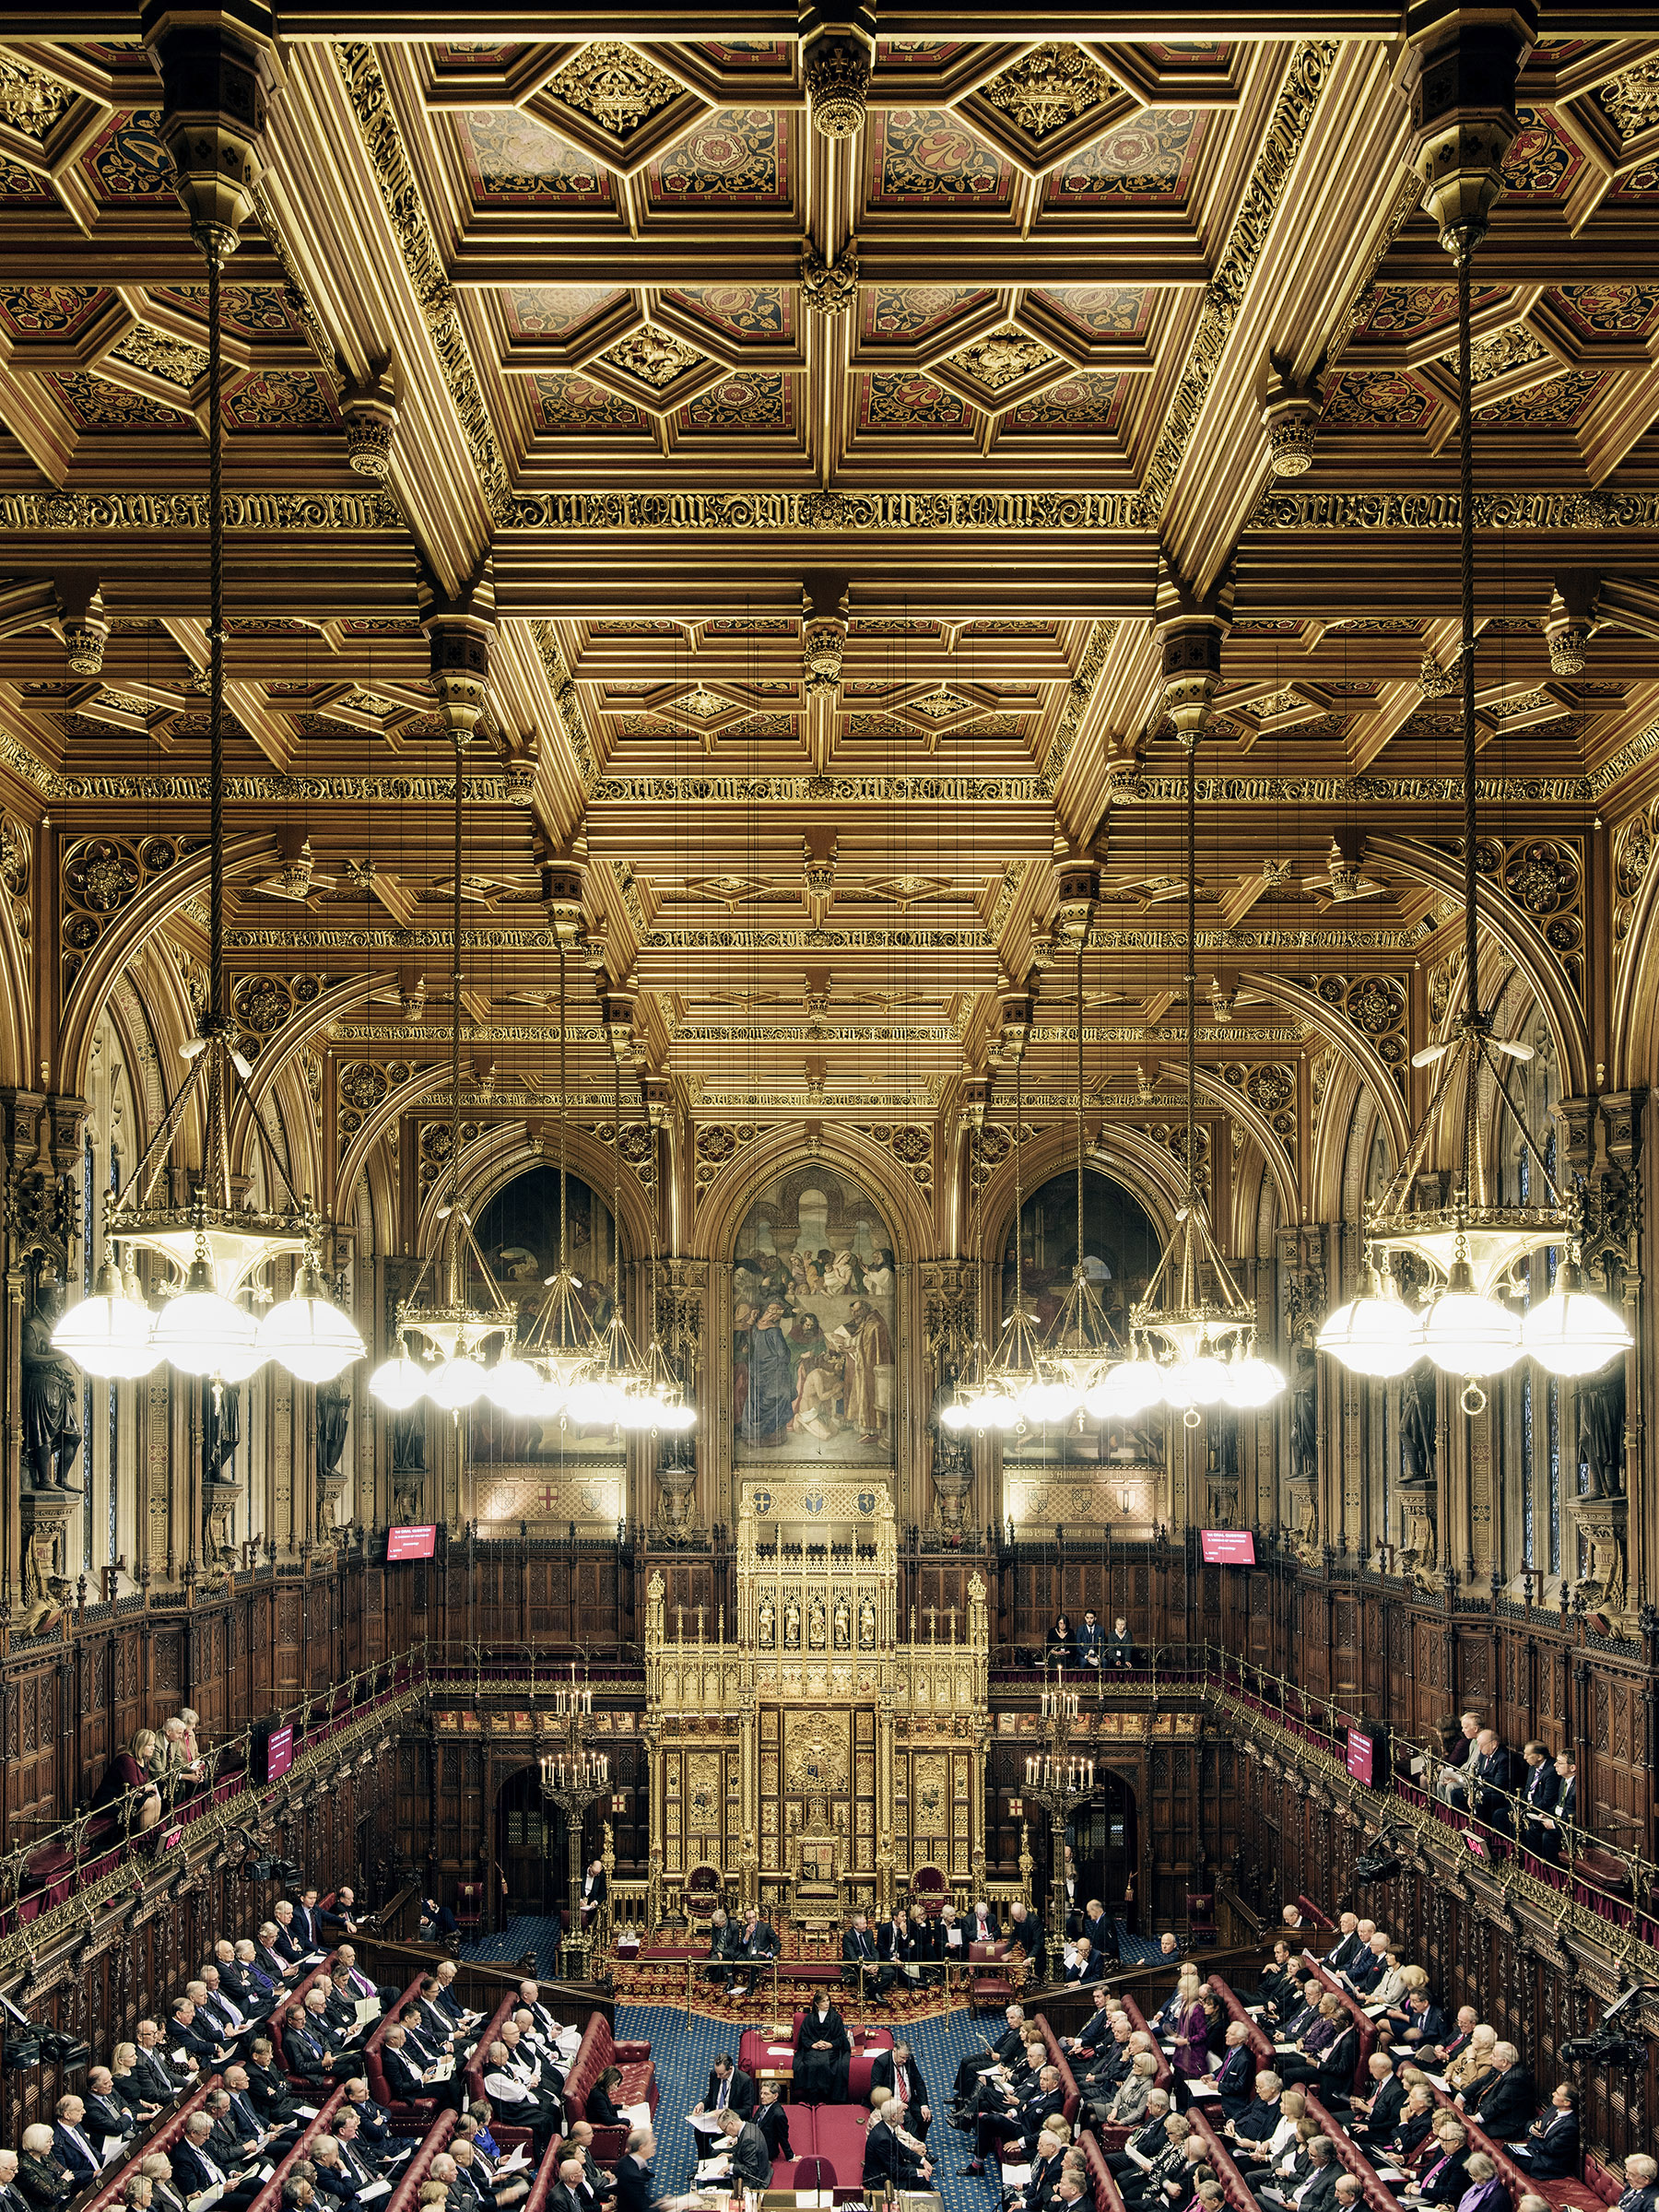 The House of Lords photographed in session at the Palace of Westminster on January 12, 2016.